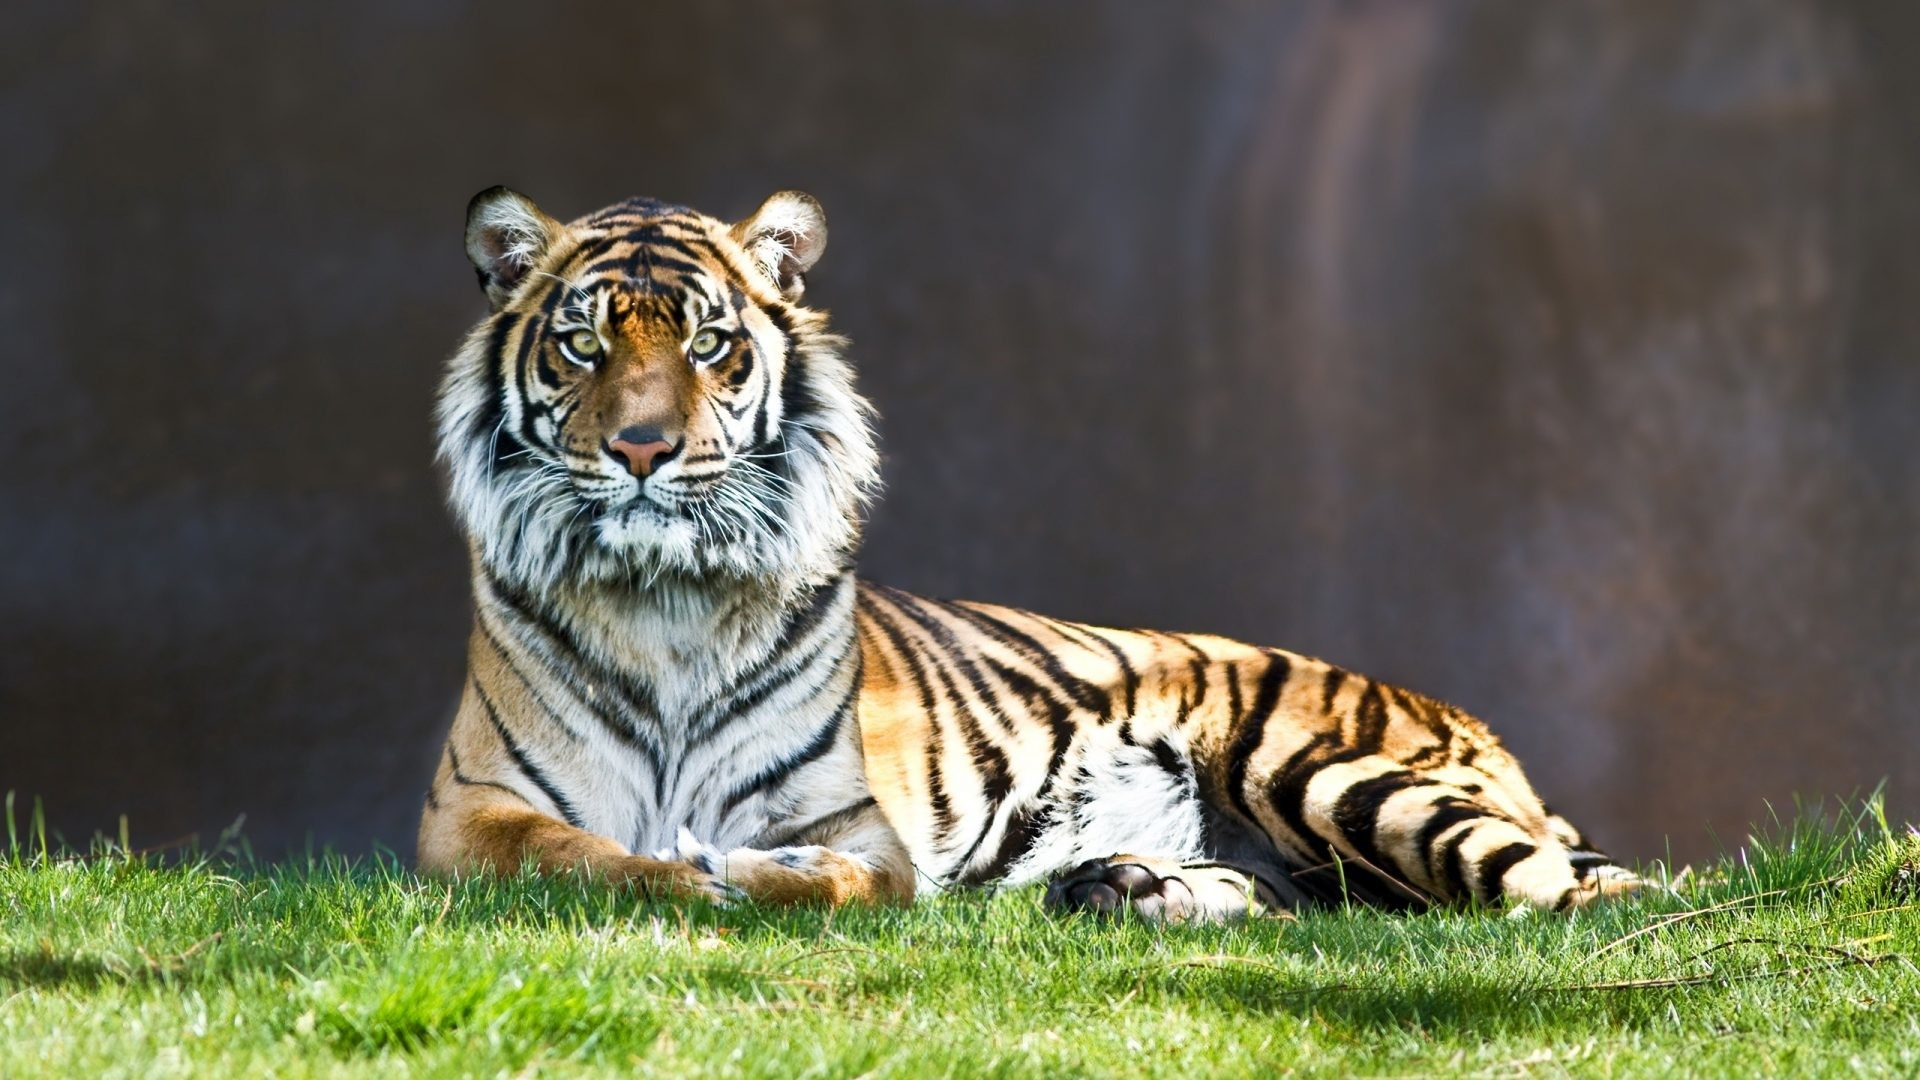 1920x1080 Cats - Tiger Japanese Cat Images for HD 16:9 High Definition 1080p 900p 720p